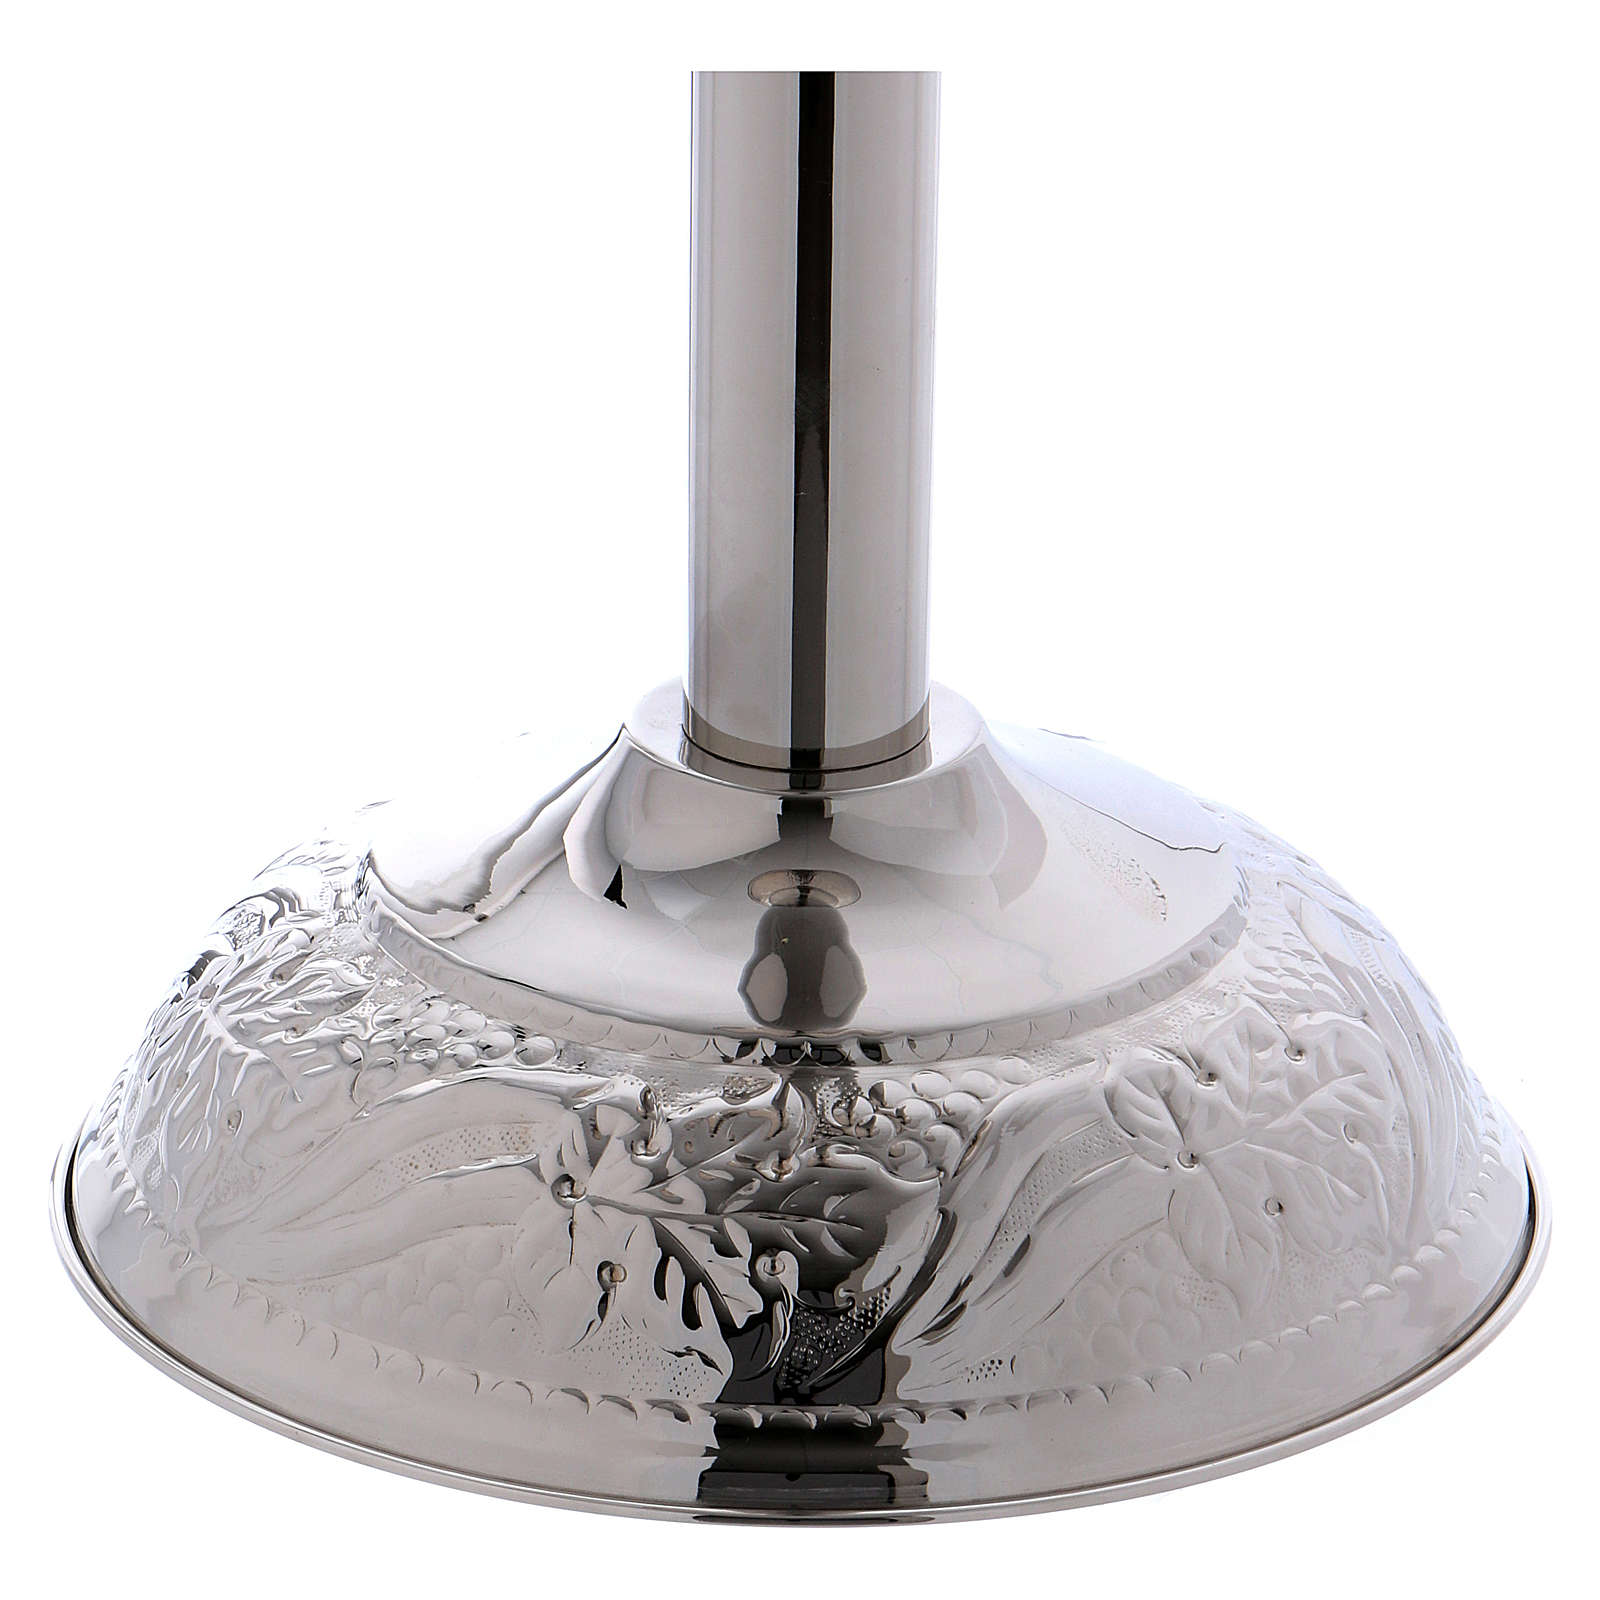 Baptismal font with grape bunches and leaves in silver brass 4